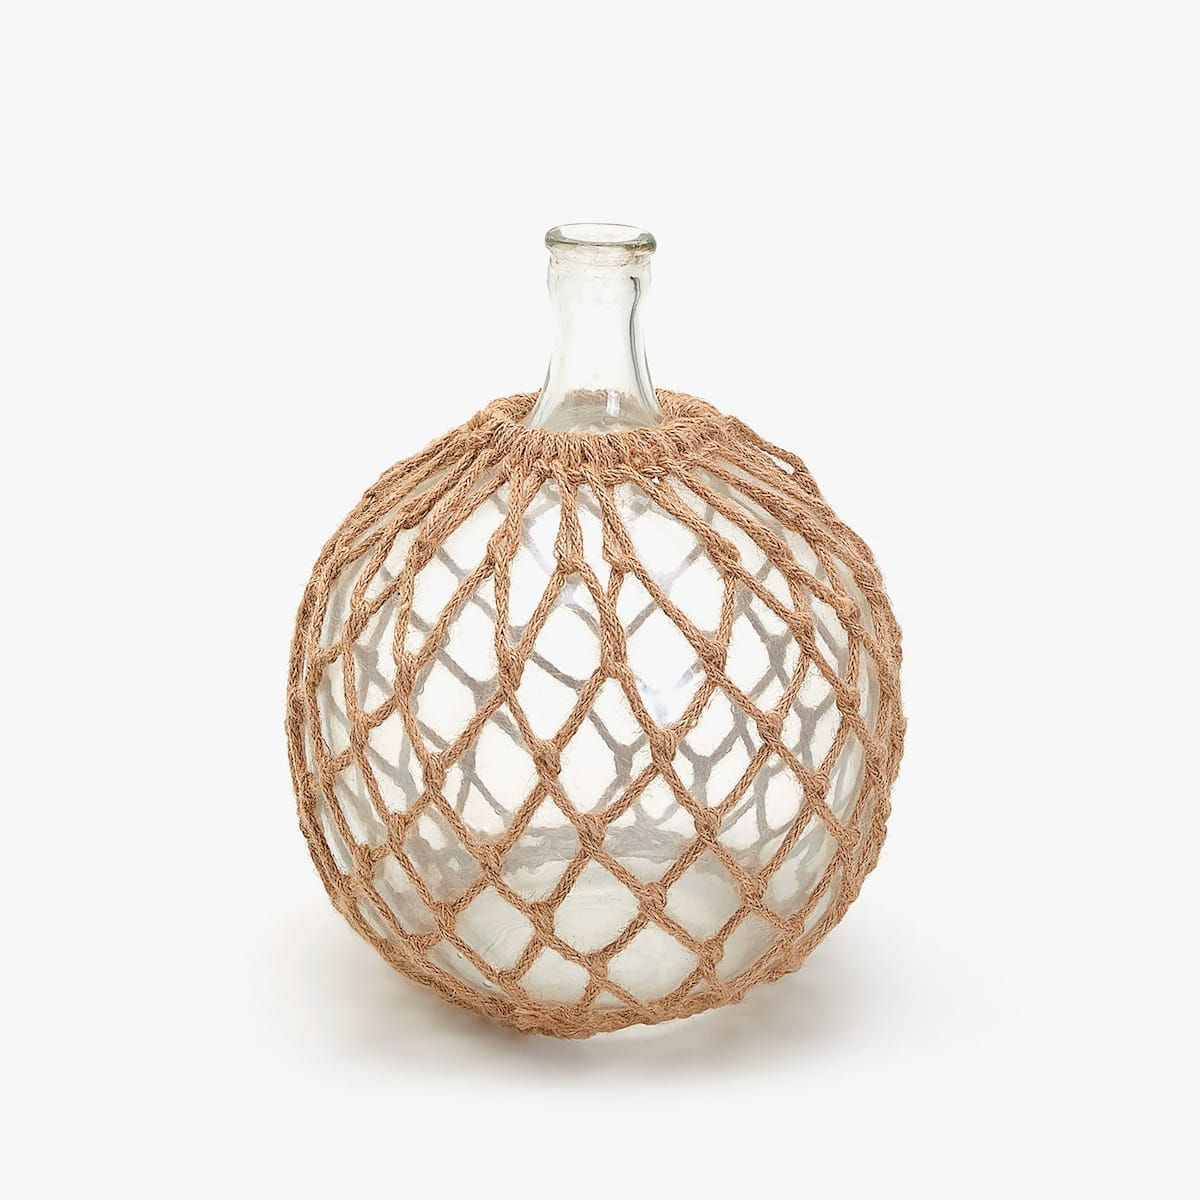 Image 1 Of The Product DECORATIVE GLASS AND JUTE BOTTLE